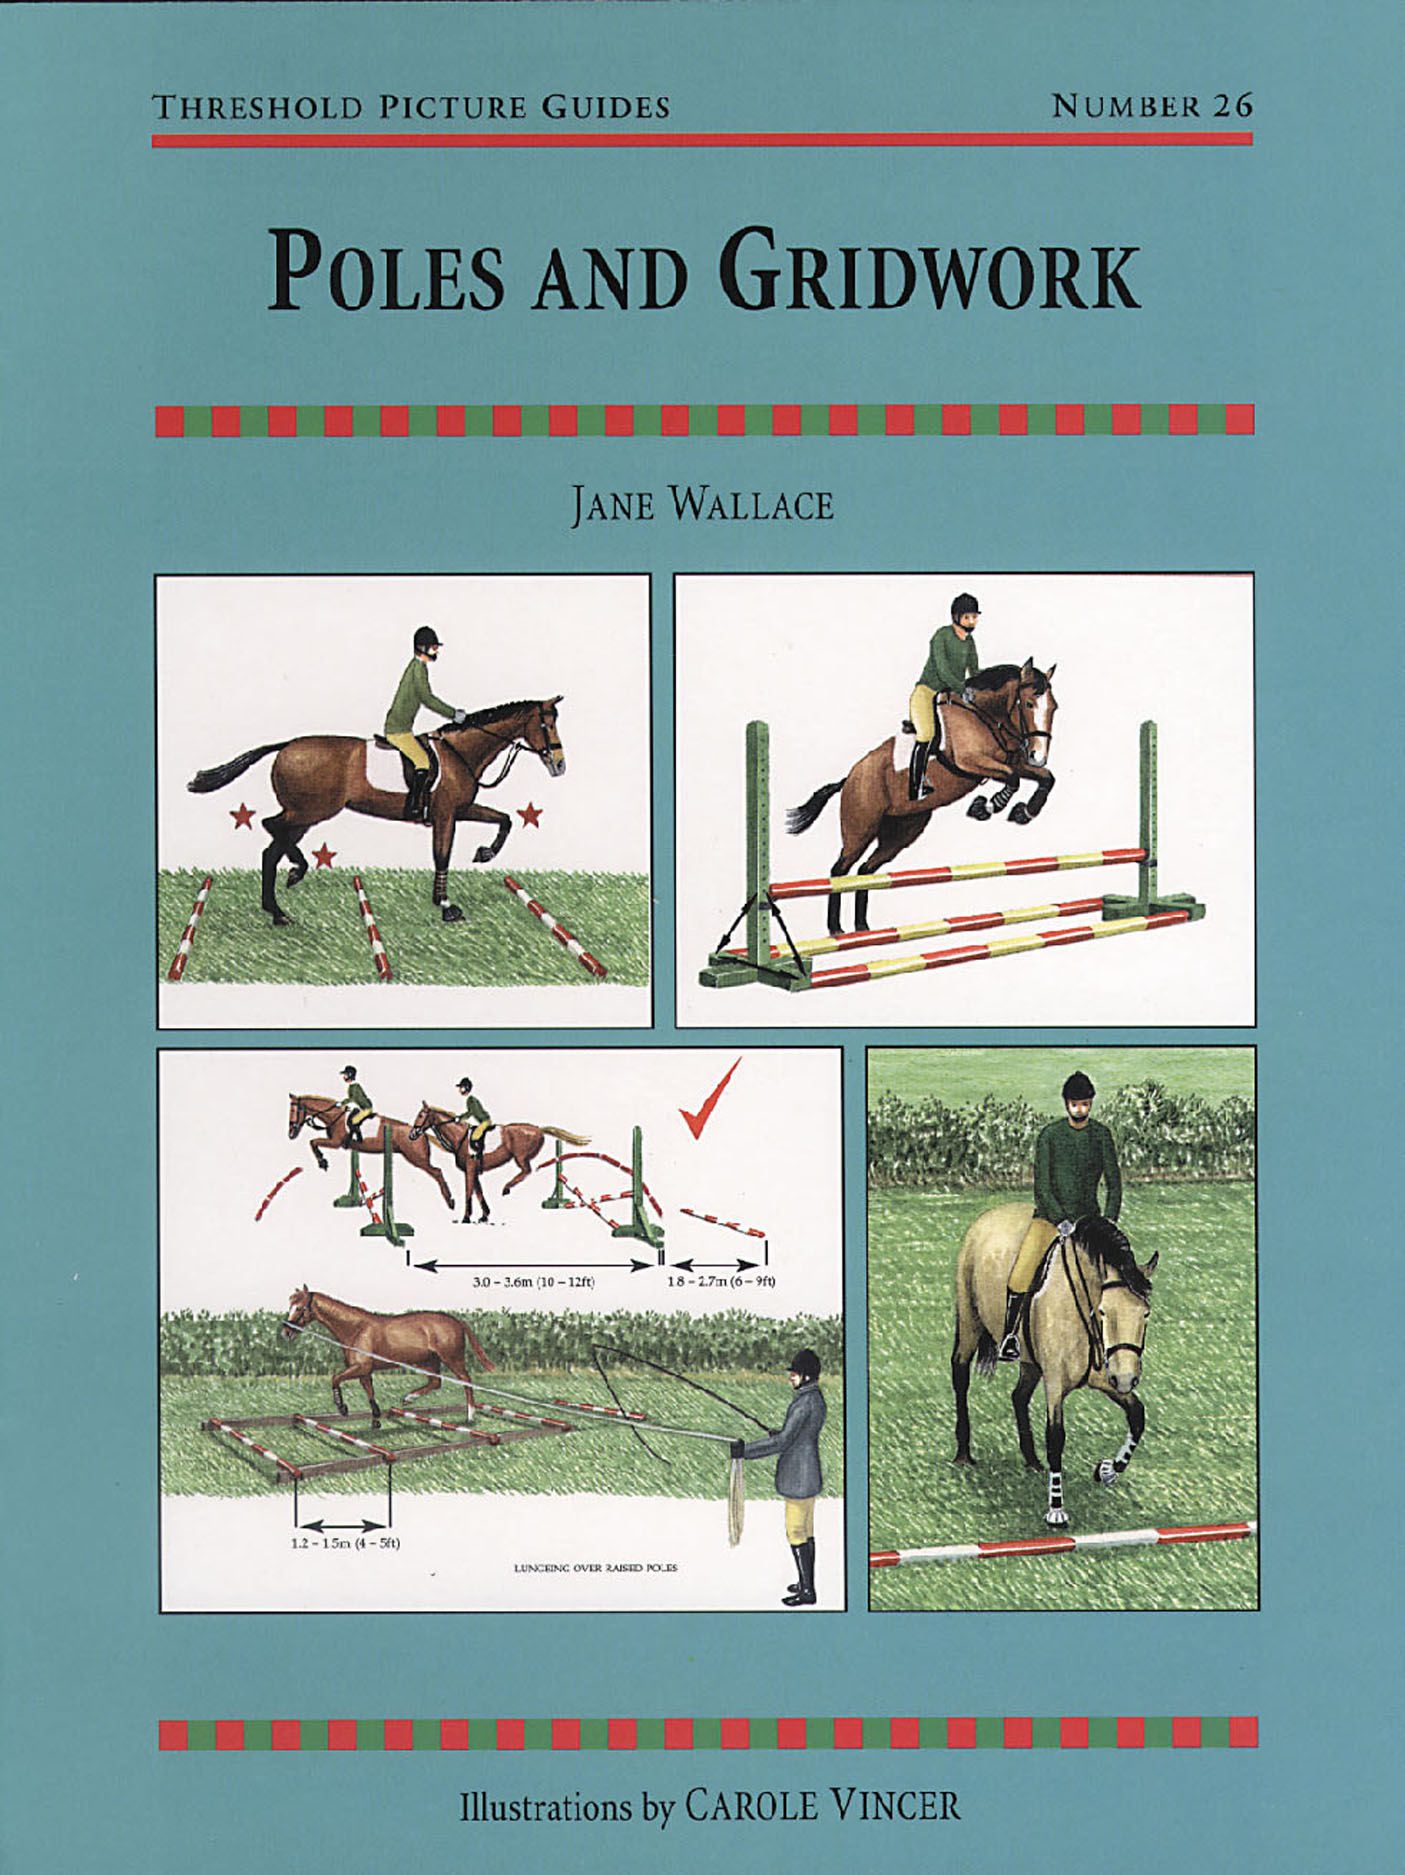 POLES AND GRIDWORK By: Jane Wallace,CAROLE VINCER